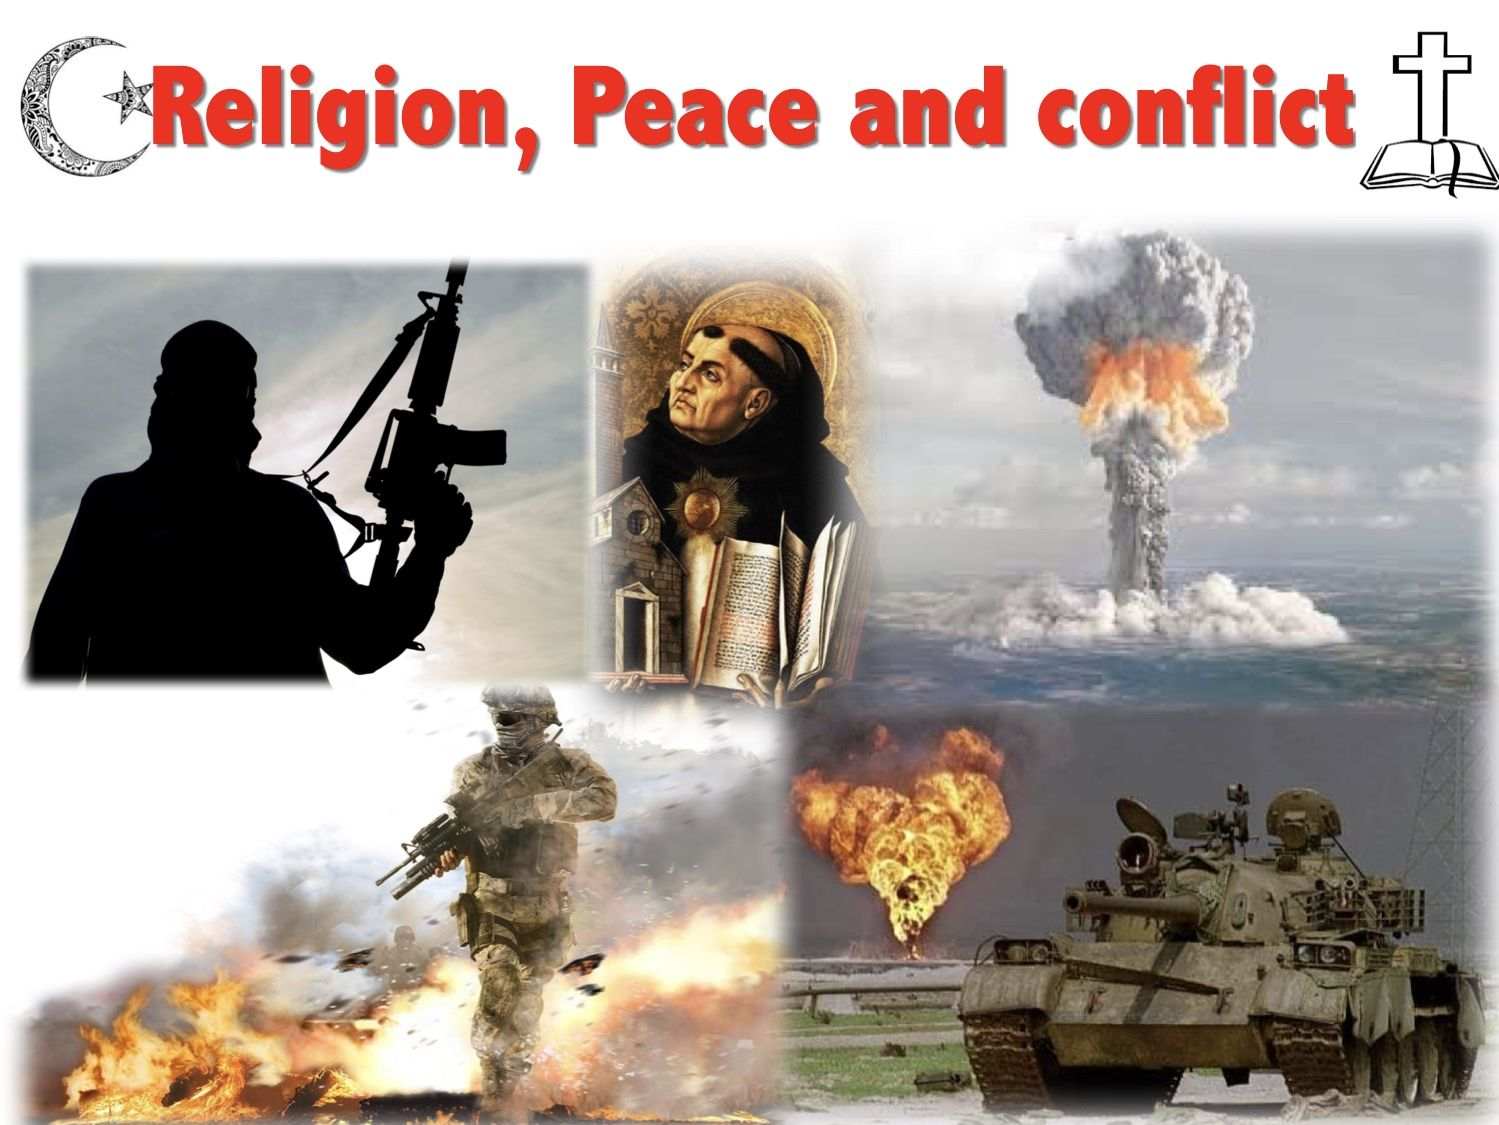 Religion peace and conflict-SOW- GCSE AQA 9-1